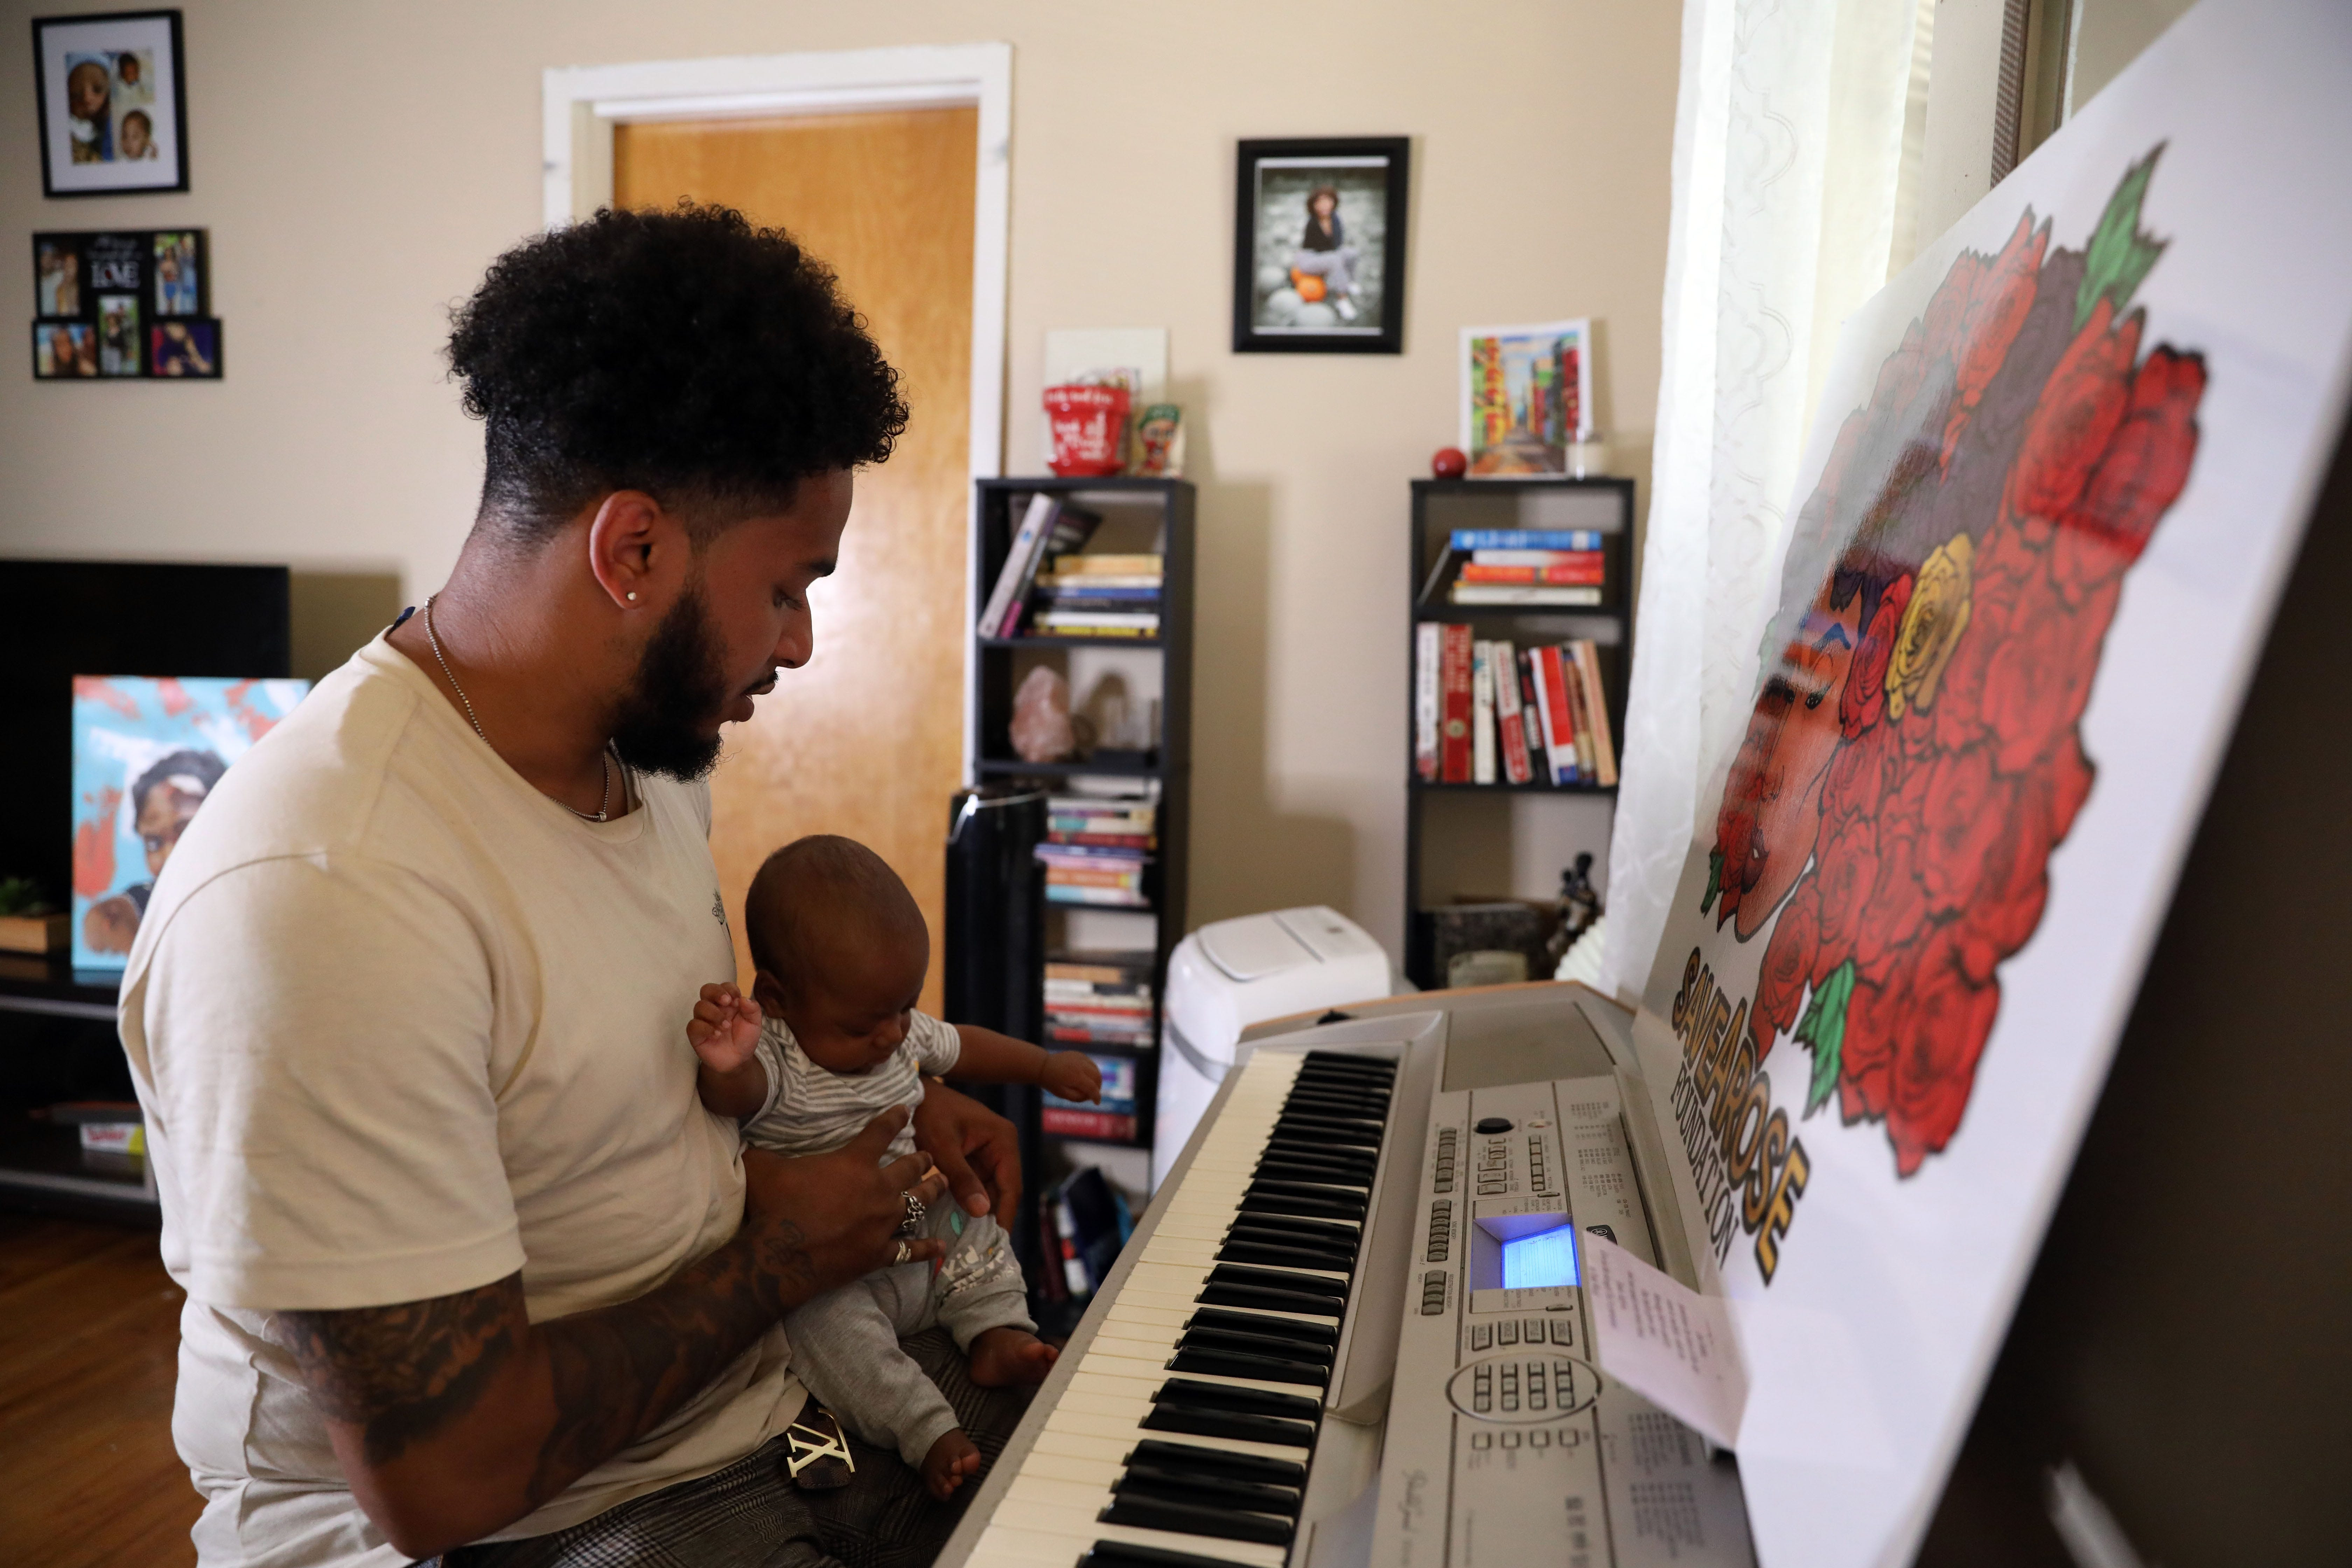 """Bruce McIntyre plays music for his son, Elias McIntyre, just like he did when he was in the womb. Bruce and his partner, Amber Isaac, did not know she had low blood platelets until a midwife checked her lab results when screening her health for a home birth. """"Amber had maybe four or five doctors signing off on her paperwork — they didn't tell us at all that her platelet levels were dropping at a dangerous rate, so obviously they weren't paying attention,""""McIntyre said. """"They were just signing off."""" Isaac died giving birth to their son through a C-section."""